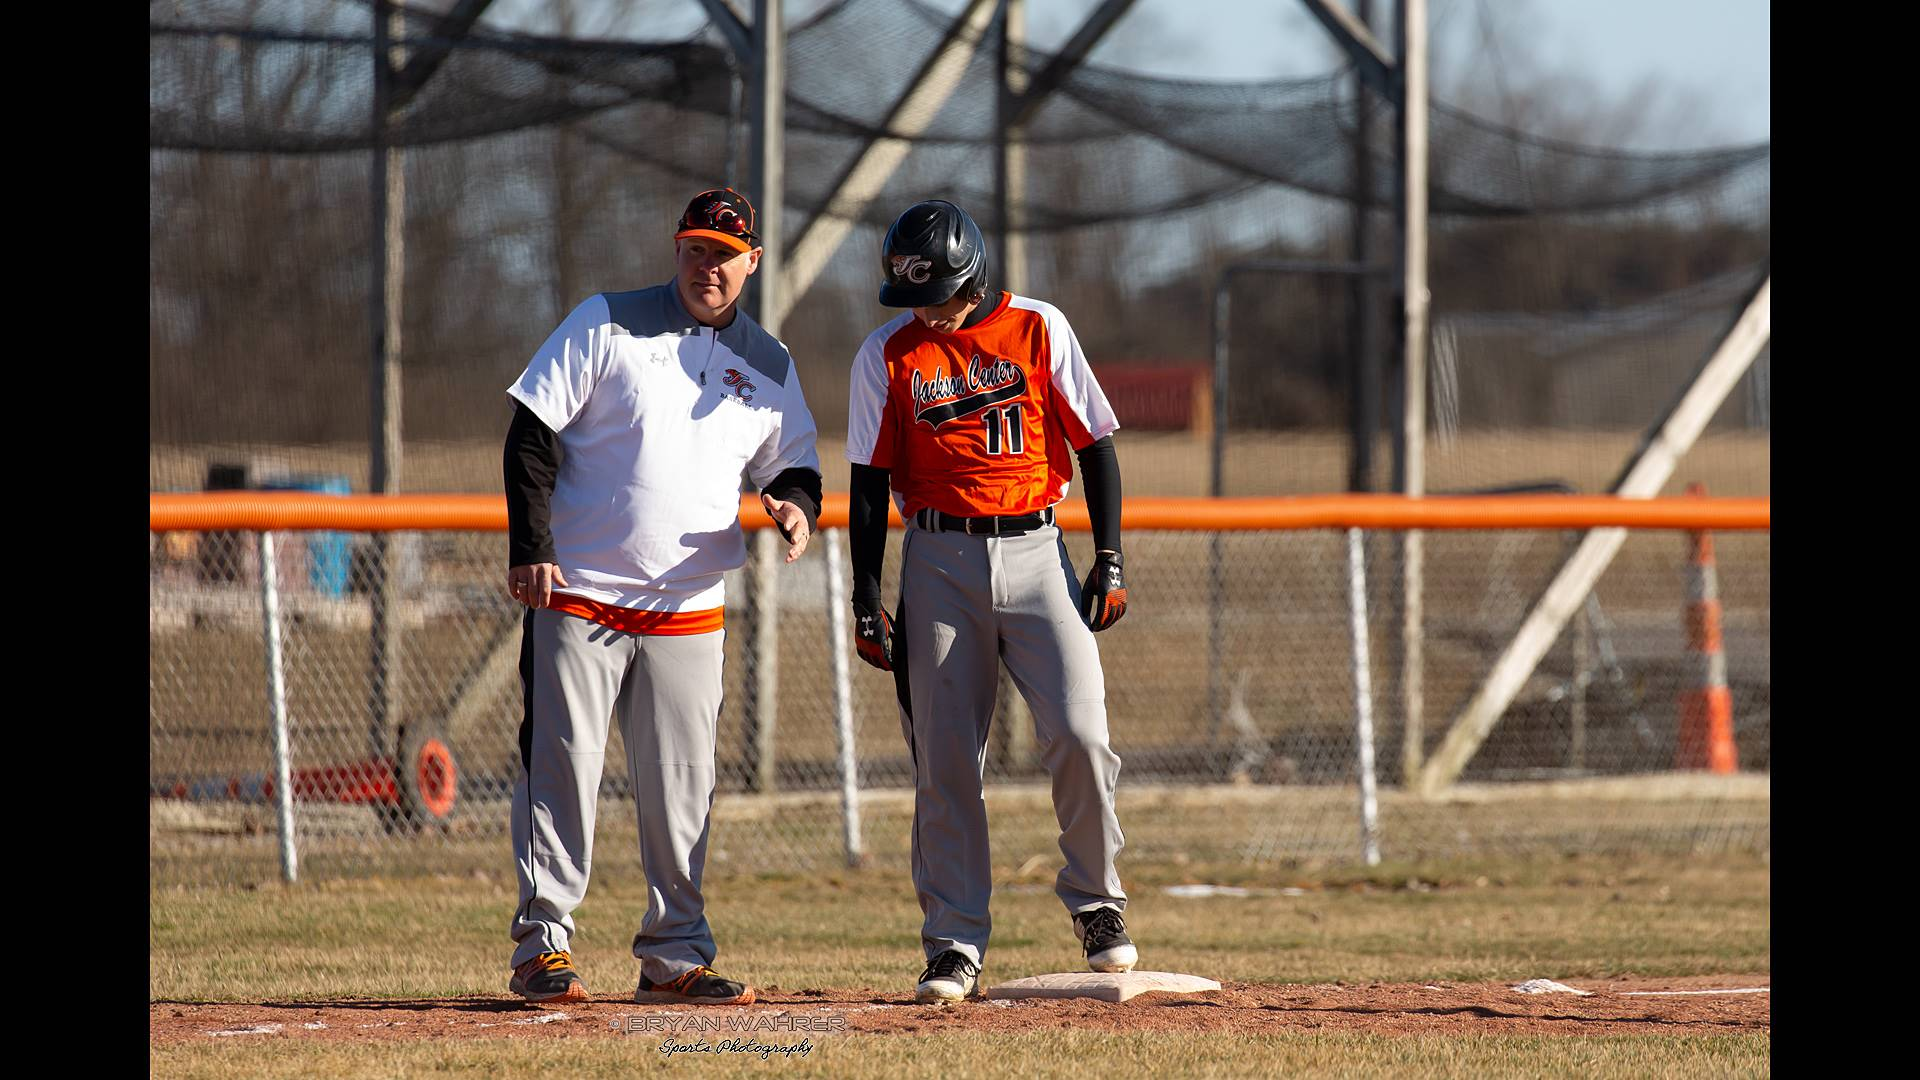 Coach talking to runner on base